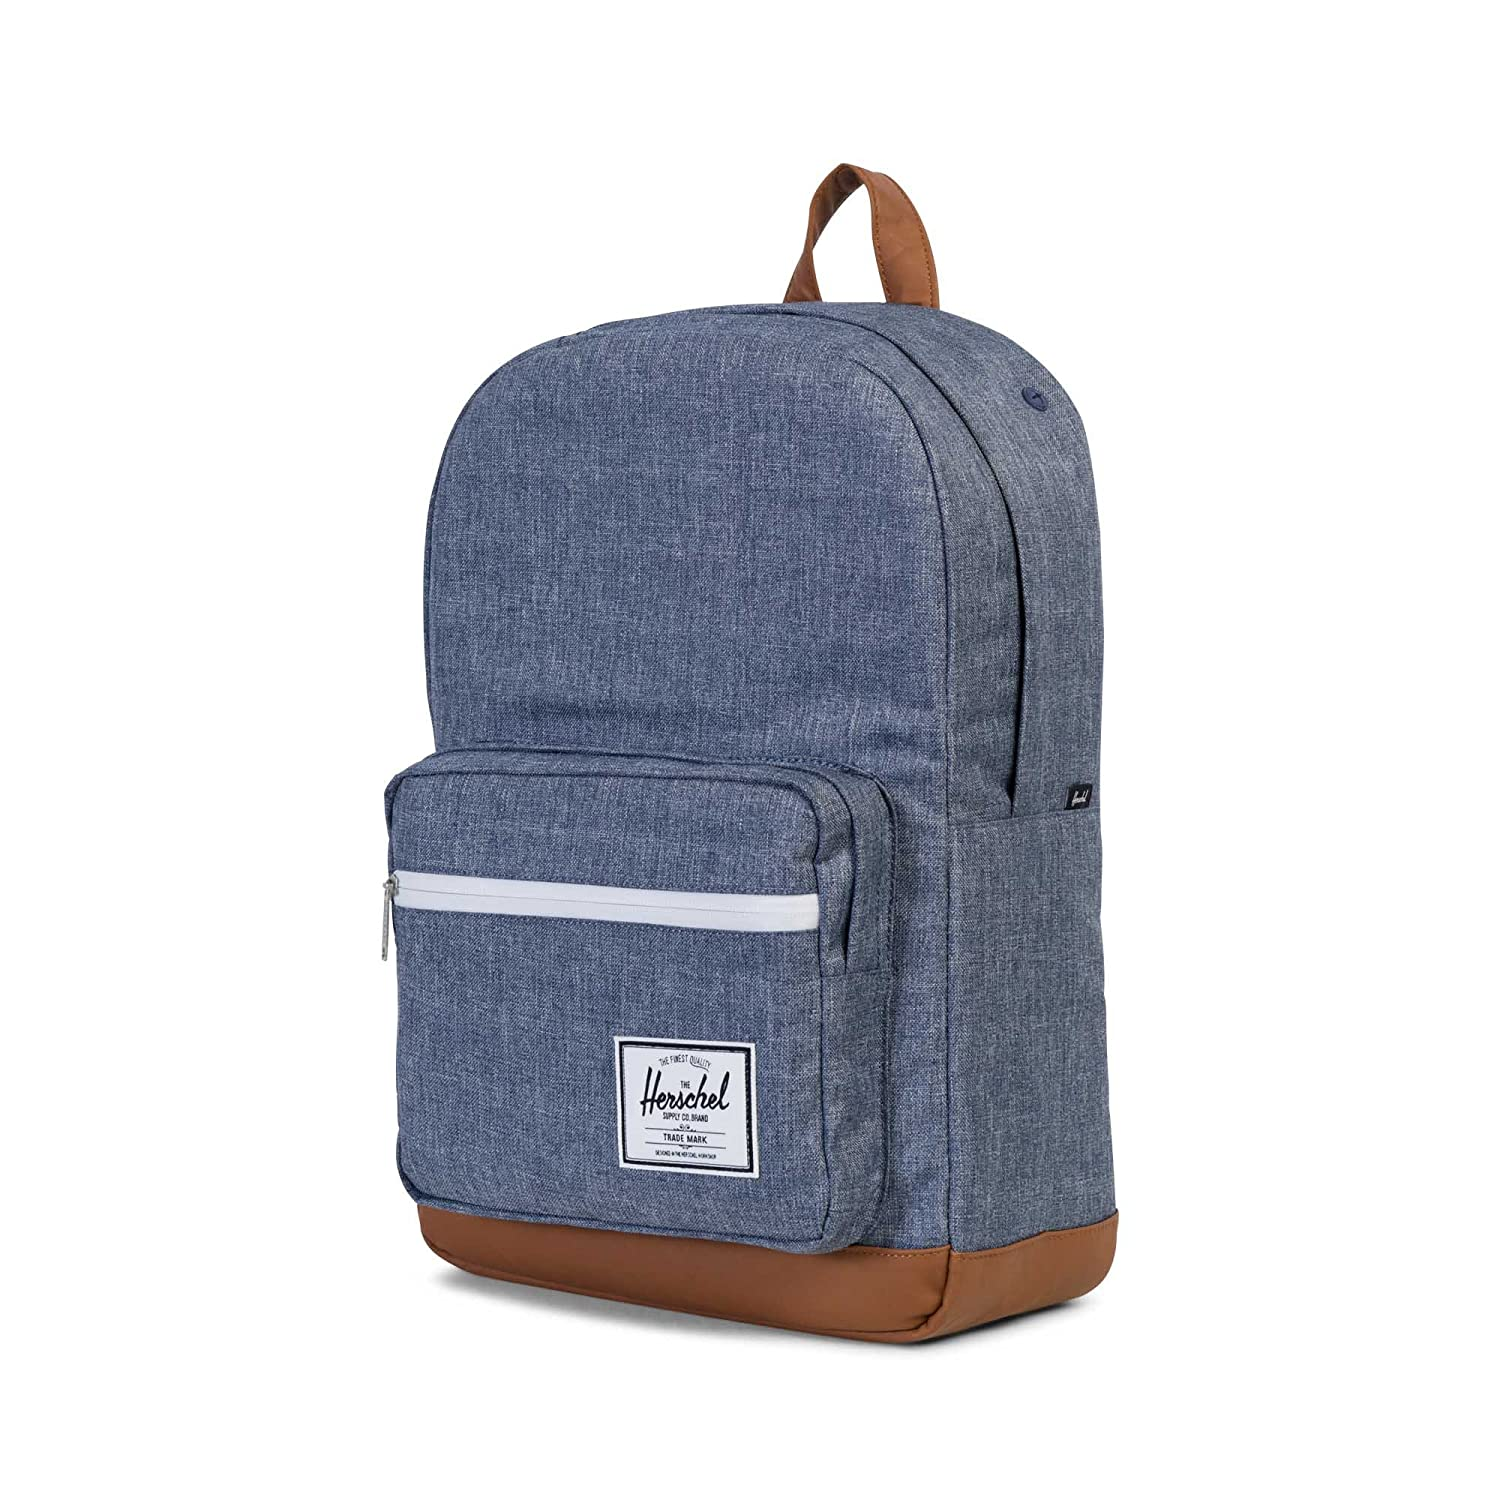 Herschel Classic Pop Quiz 15 Rucksack blue_blue-grey x: Amazon.es: Equipaje